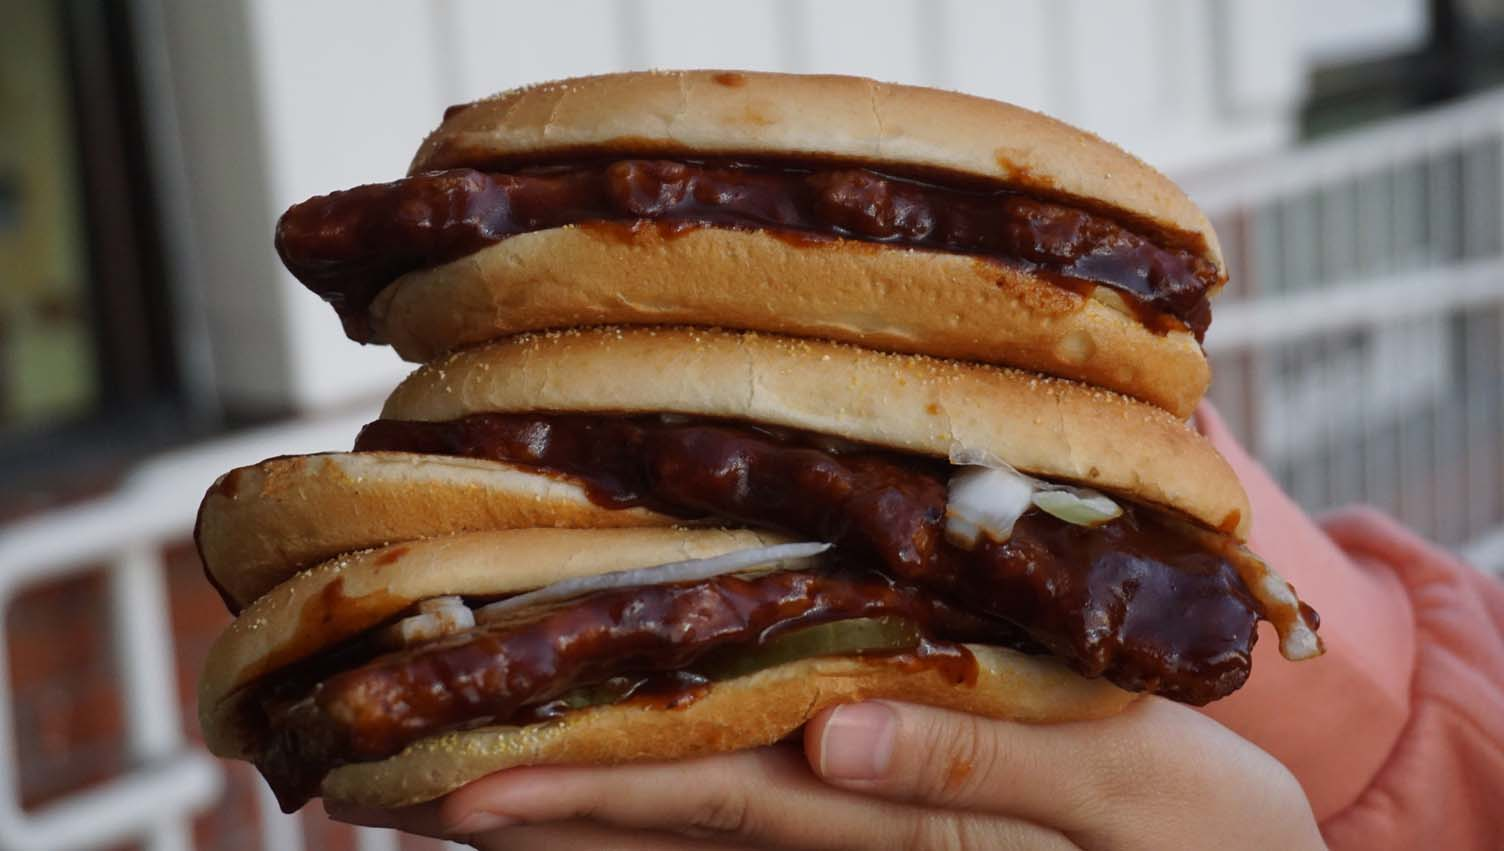 The McRib Is Back For a Limited Time! @ McDonald's! And We Finally Tried It For the First Time!